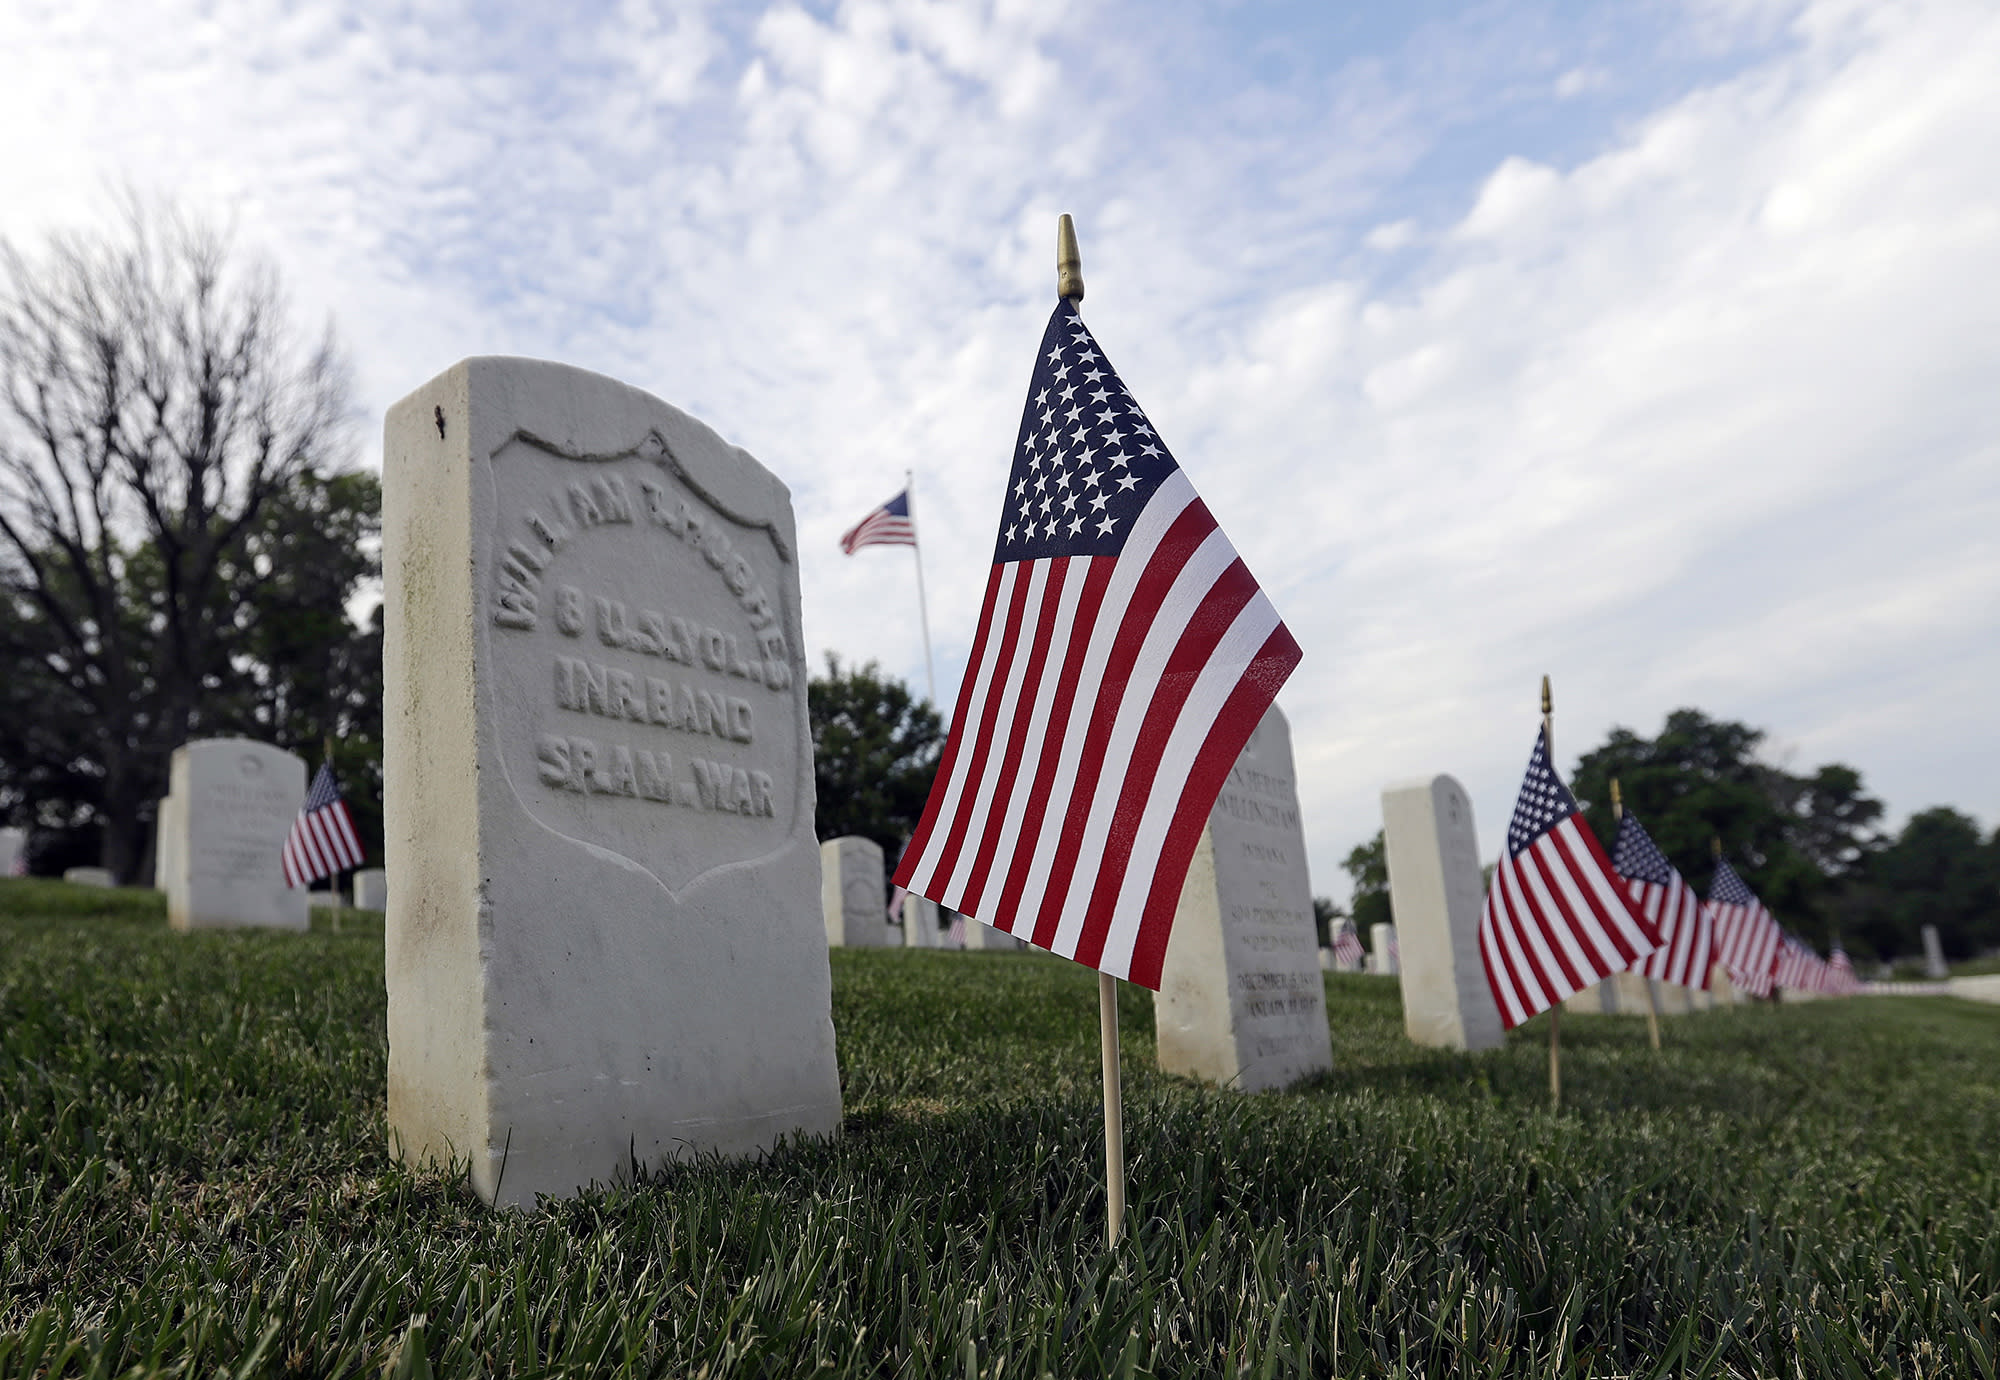 America commemorates vets over Memorial Day weekend